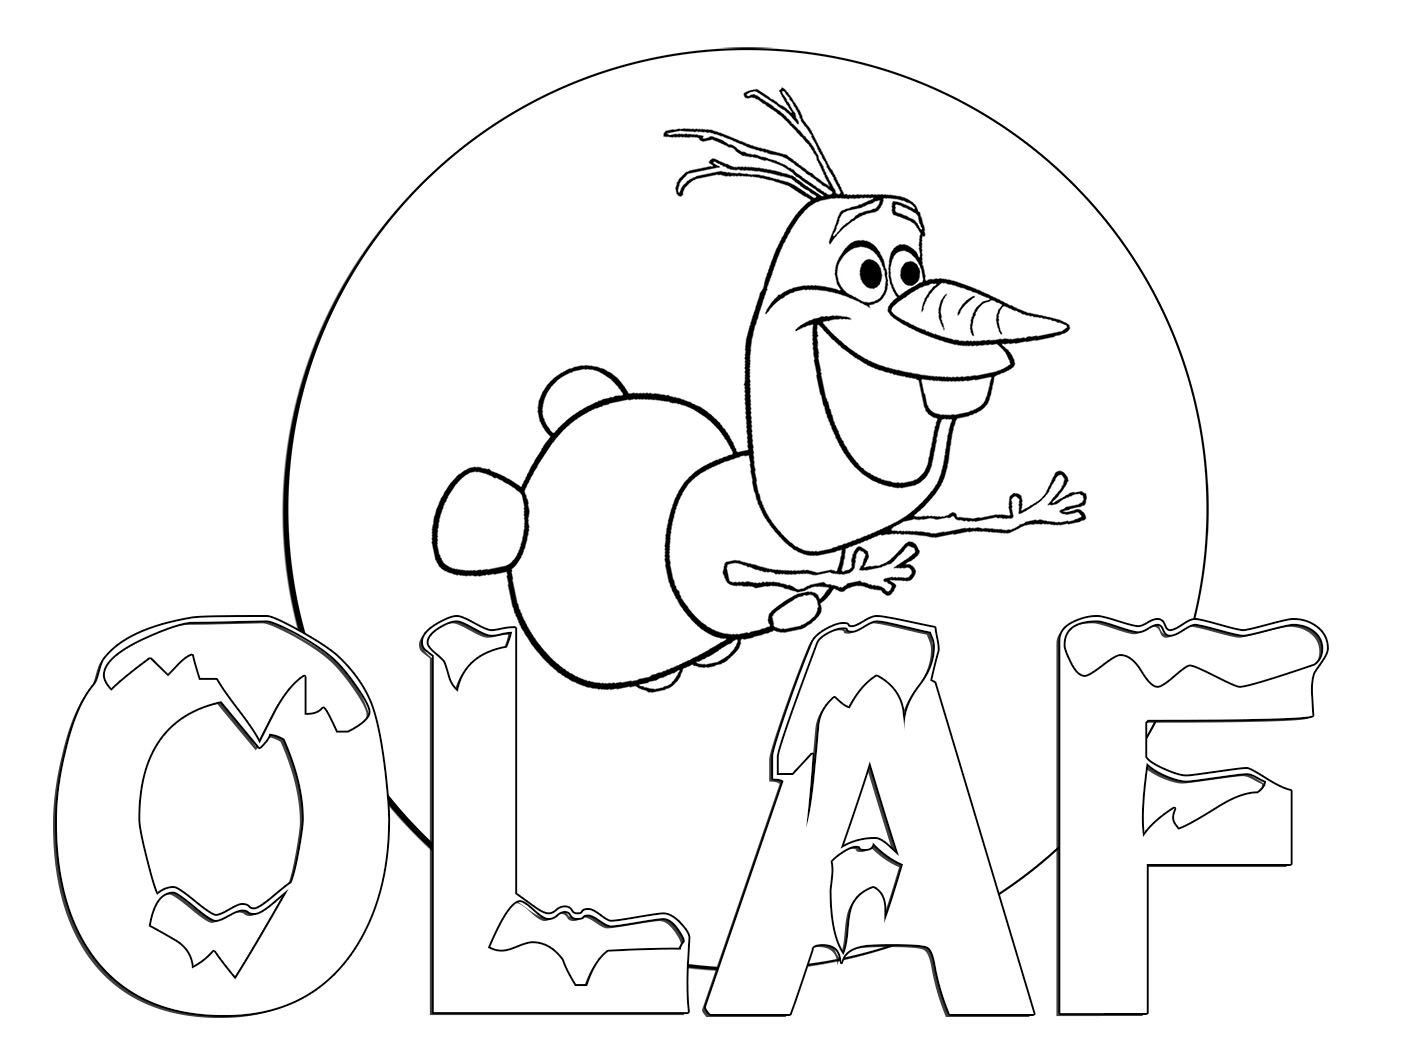 Frozen Free Coloring Page Of Olaf Finding A Flower With The Trees